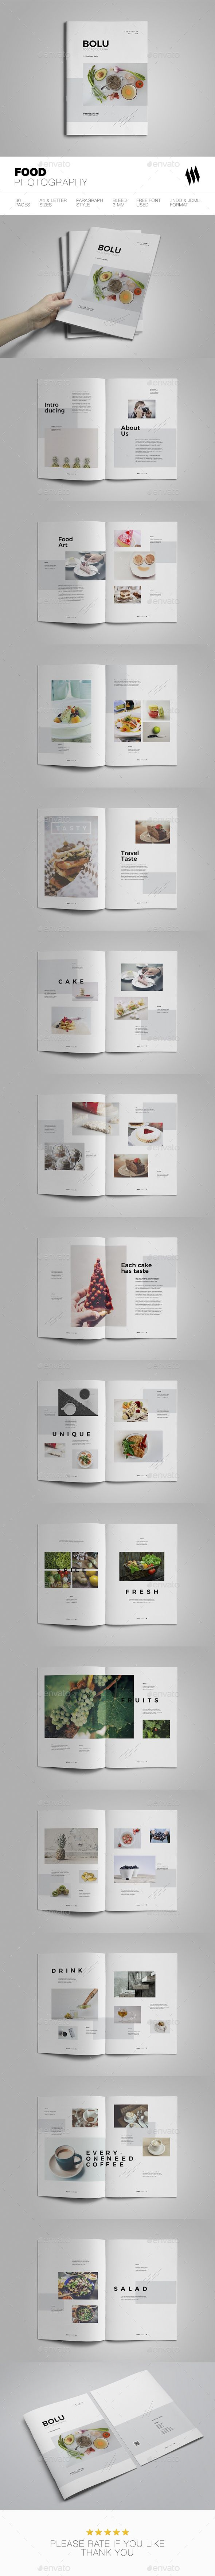 Food Photography | Photography brochure, Brochures and Print templates